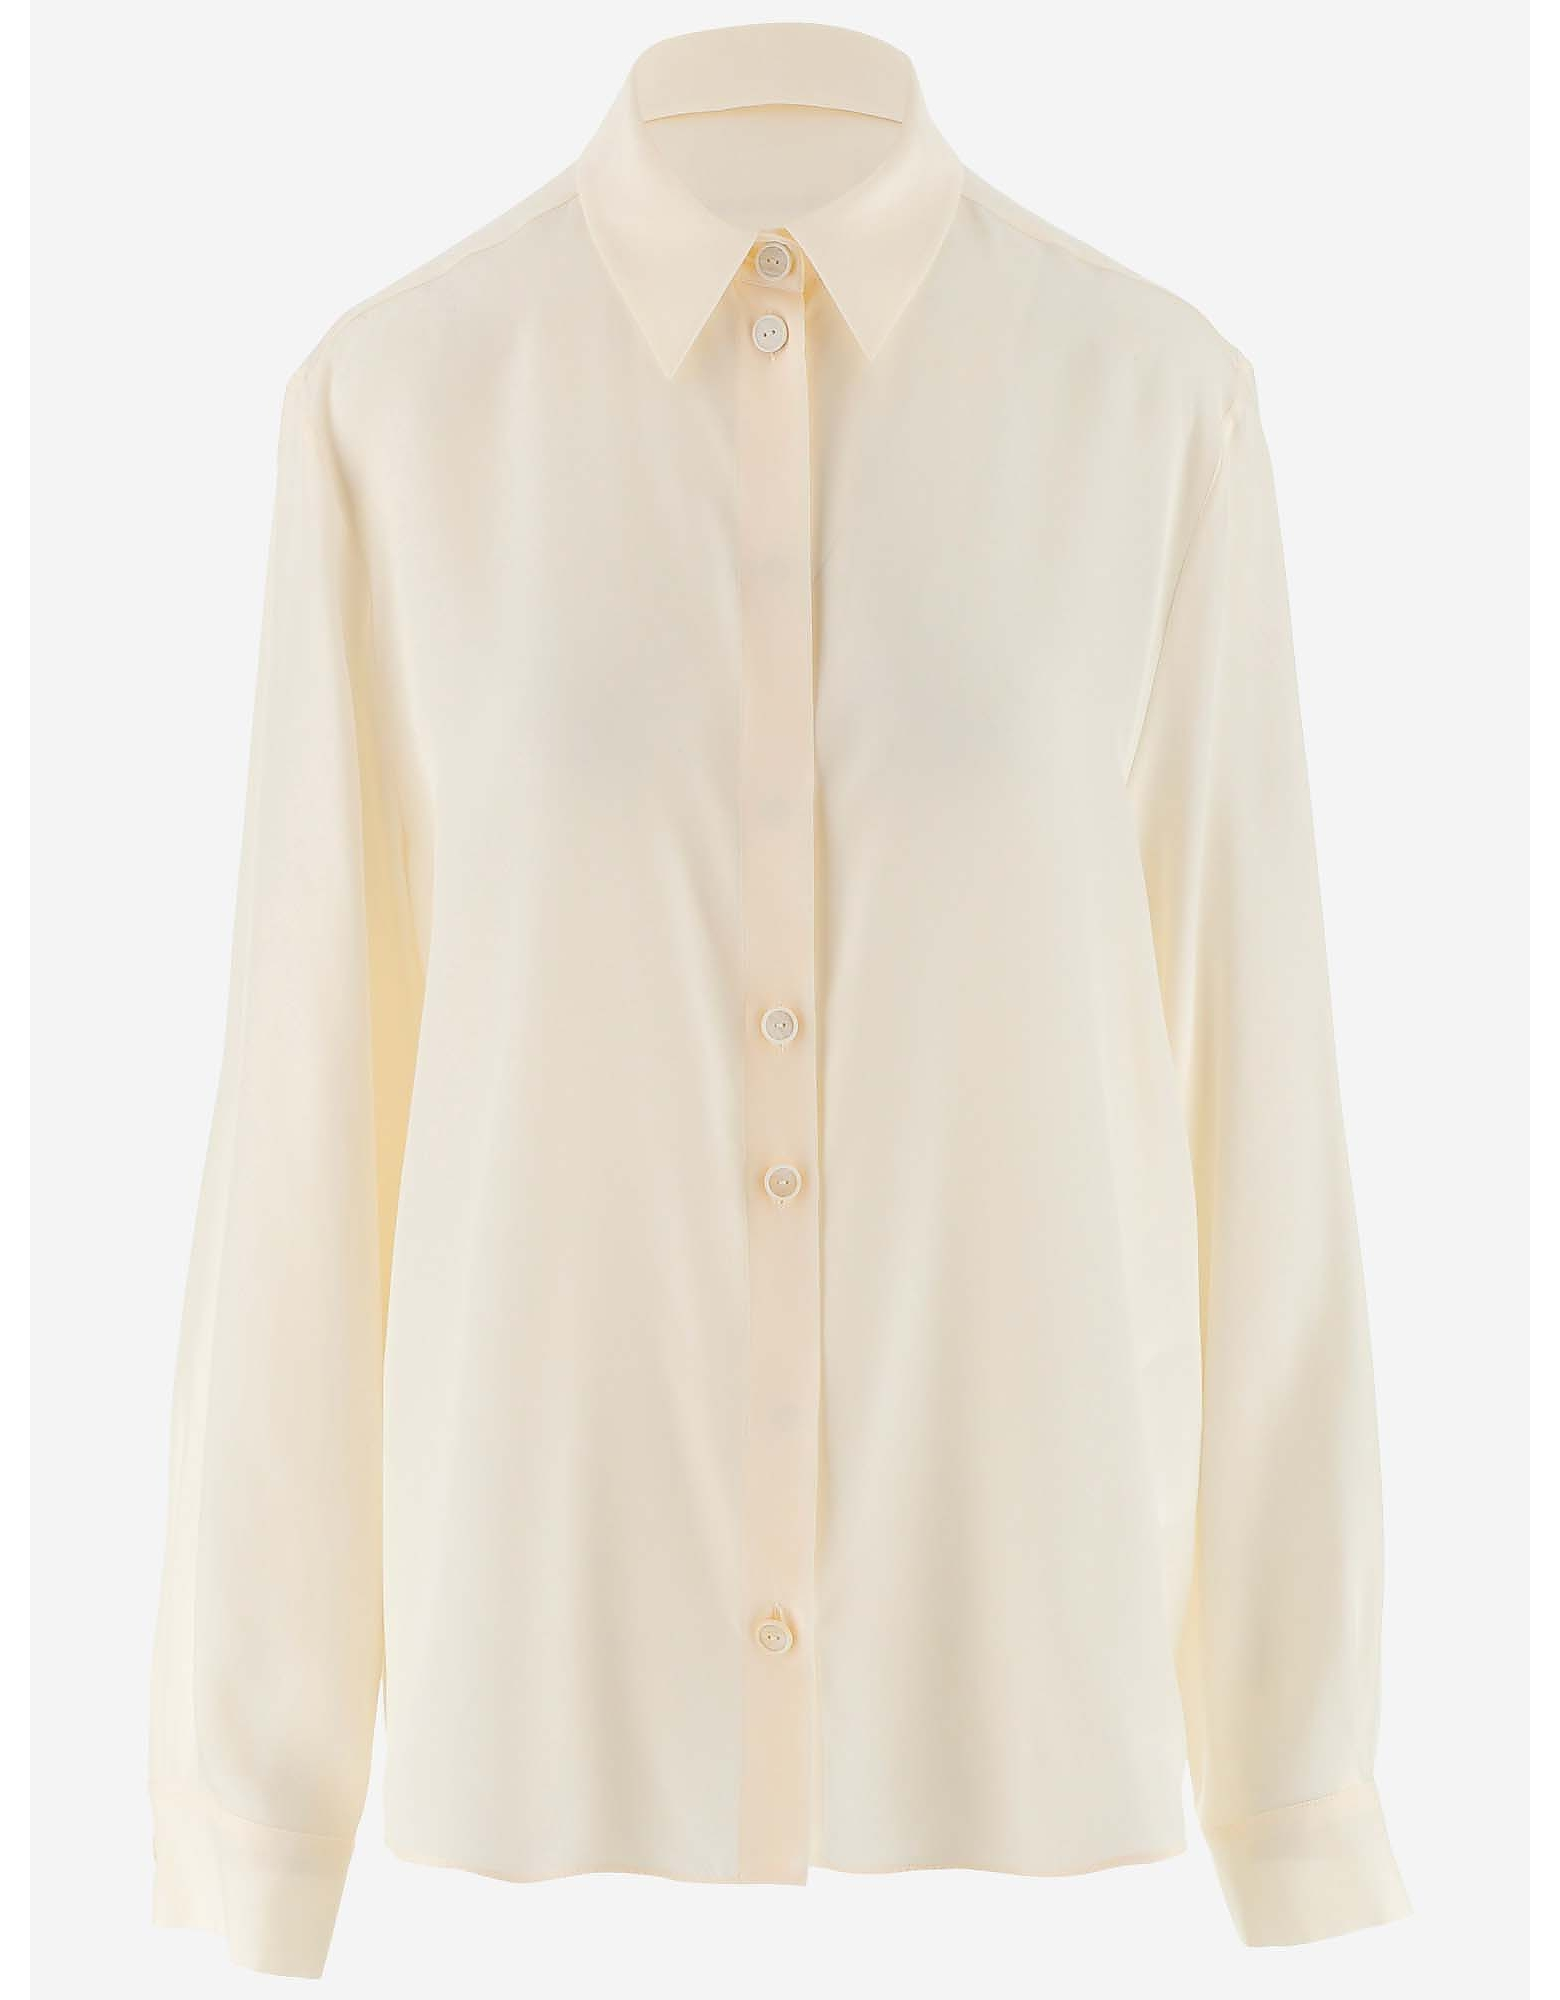 Jil Sander Designer Shirts, Powder Pink Silk Women's Shirt